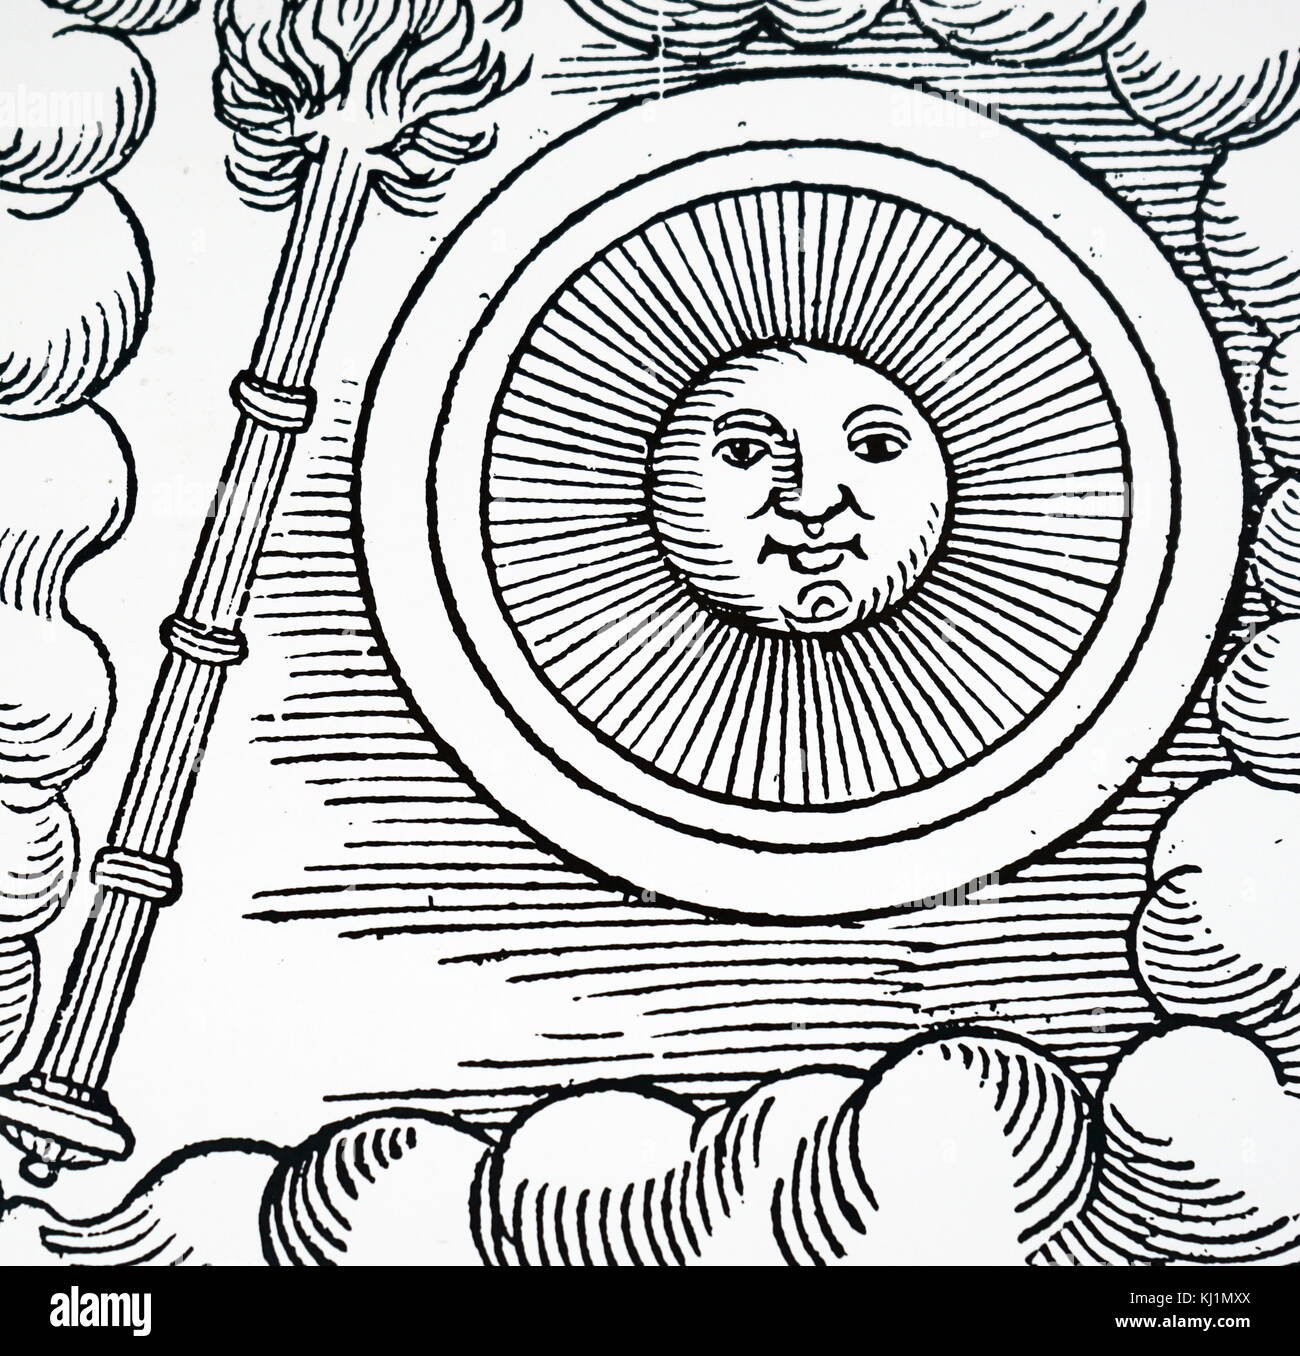 Woodblock print depicting a Sungrazing comet. A Sungrazing comet is a comet that passes extremely close to the Sun - Stock Image